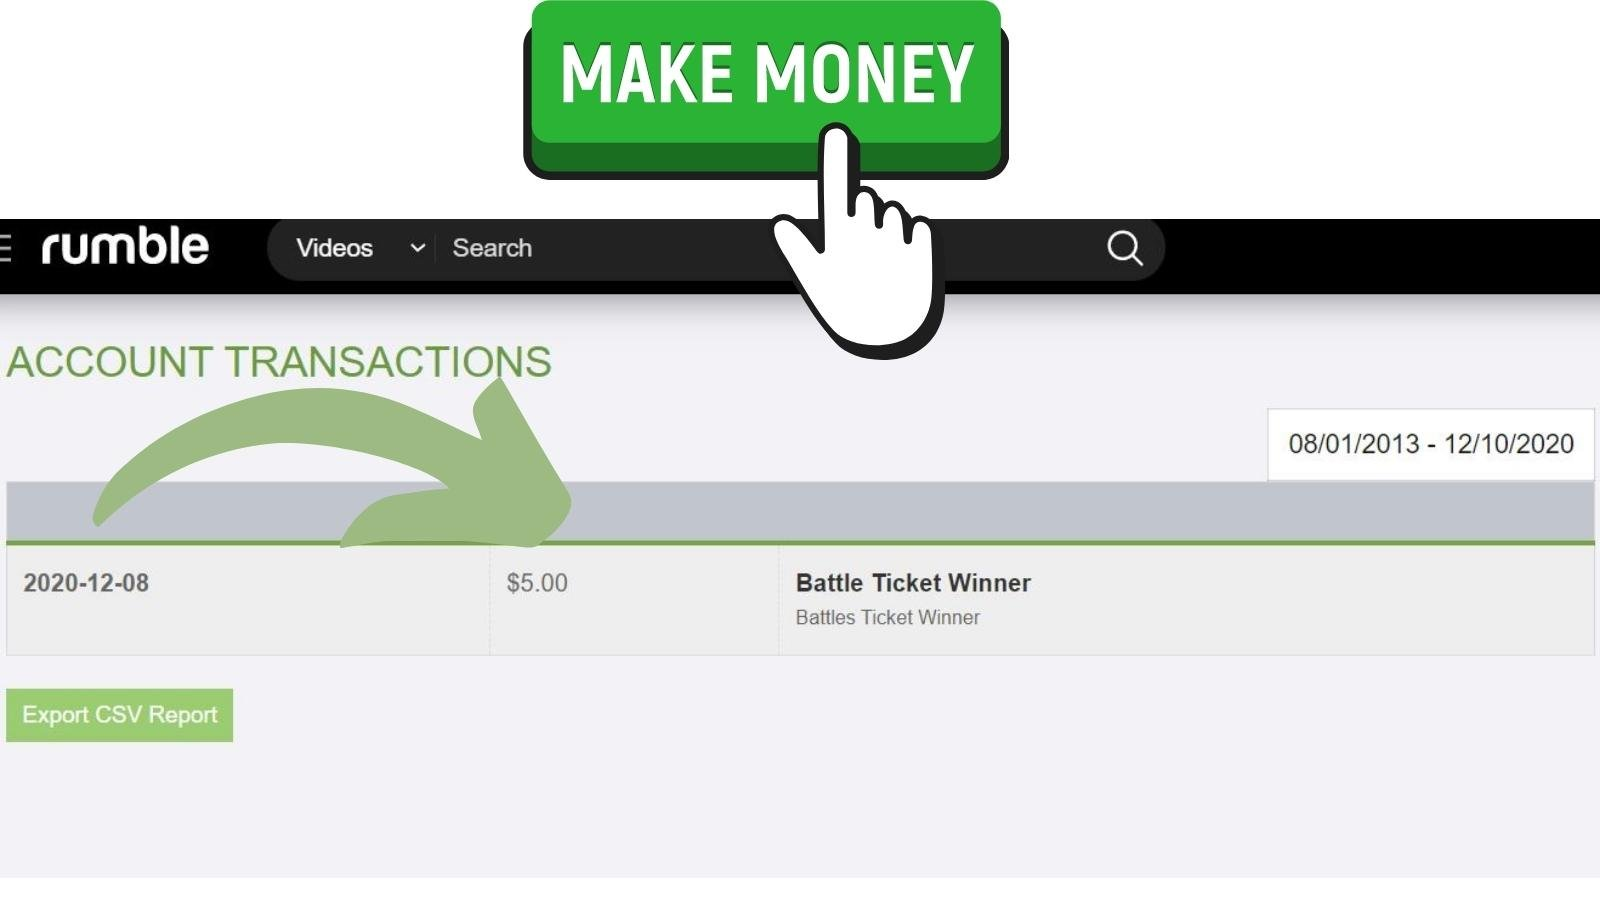 How to make money on Rumble The Online Video Platform